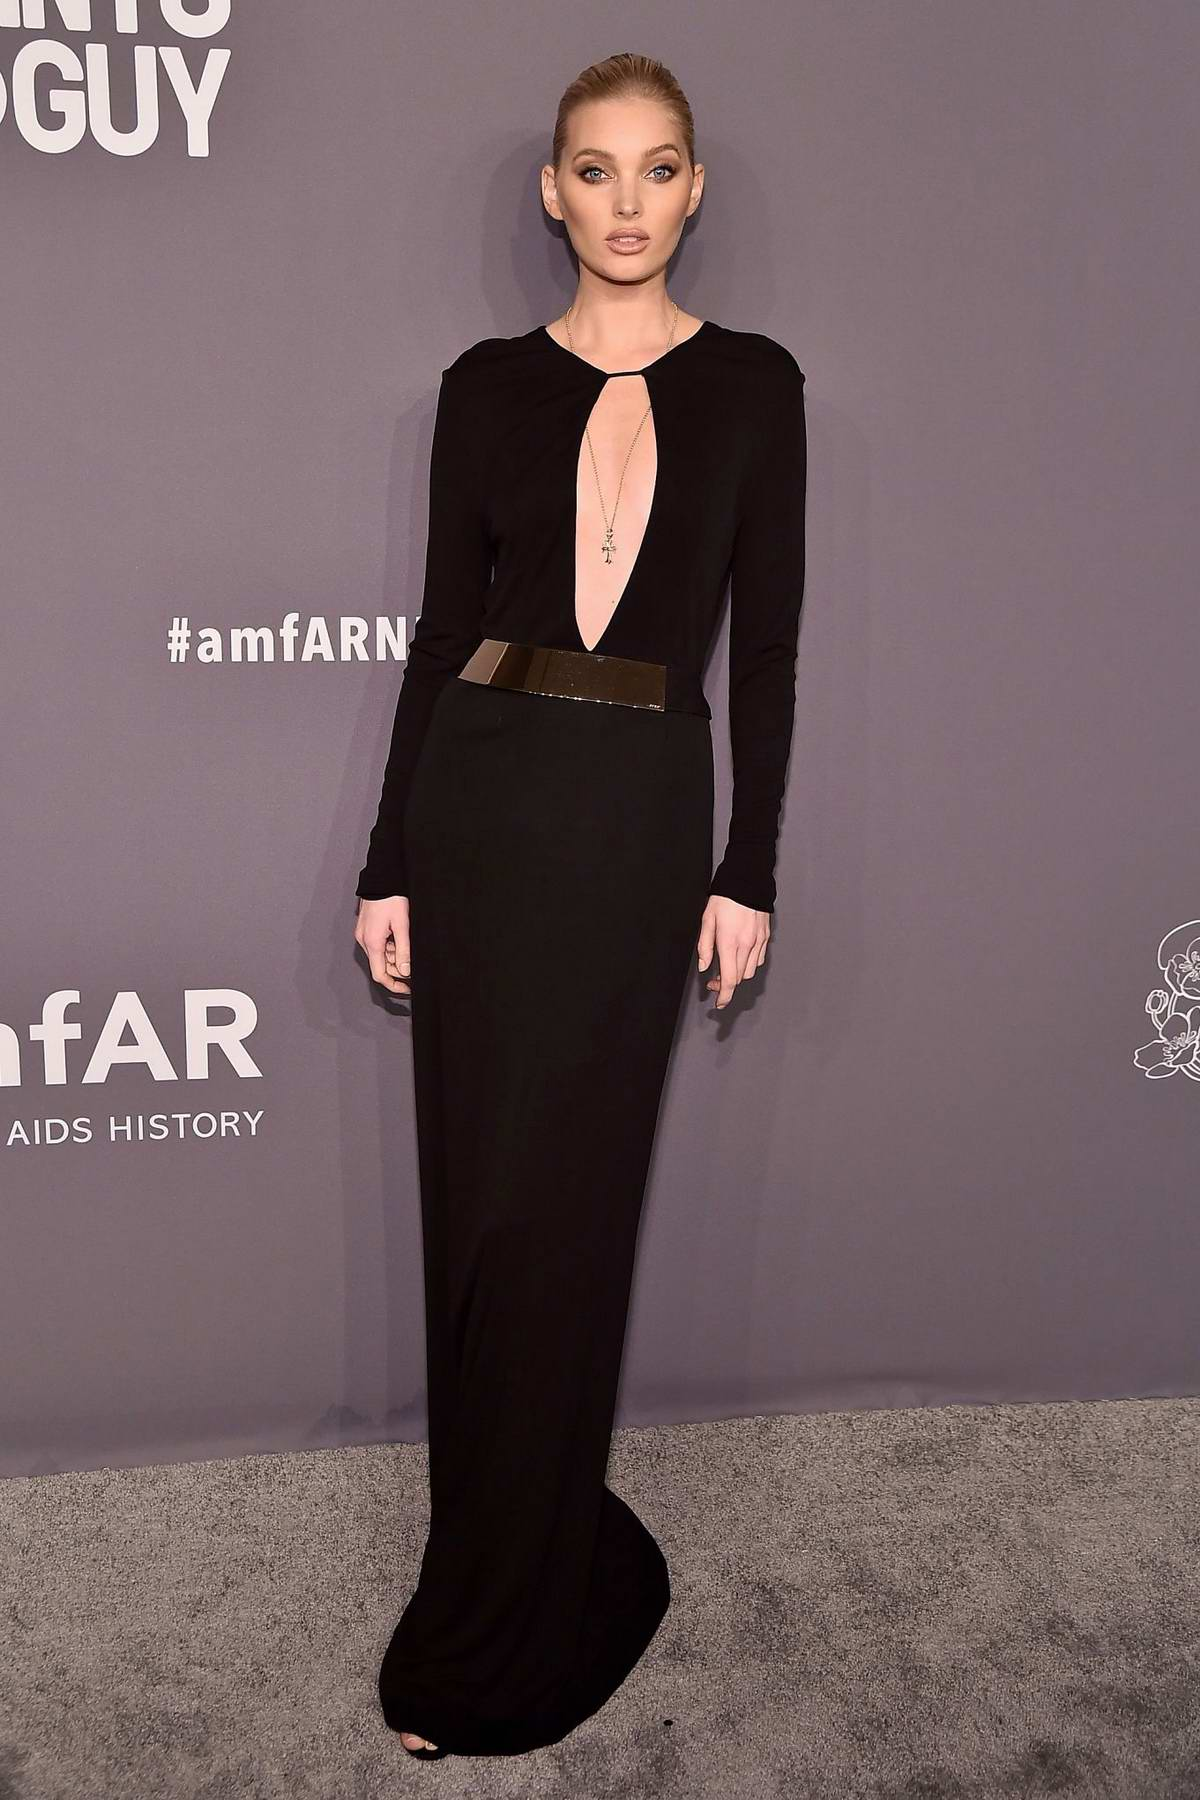 Elsa Hosk attends amfAR New York Gala 2019 at Cipriani Wall Street in New York City